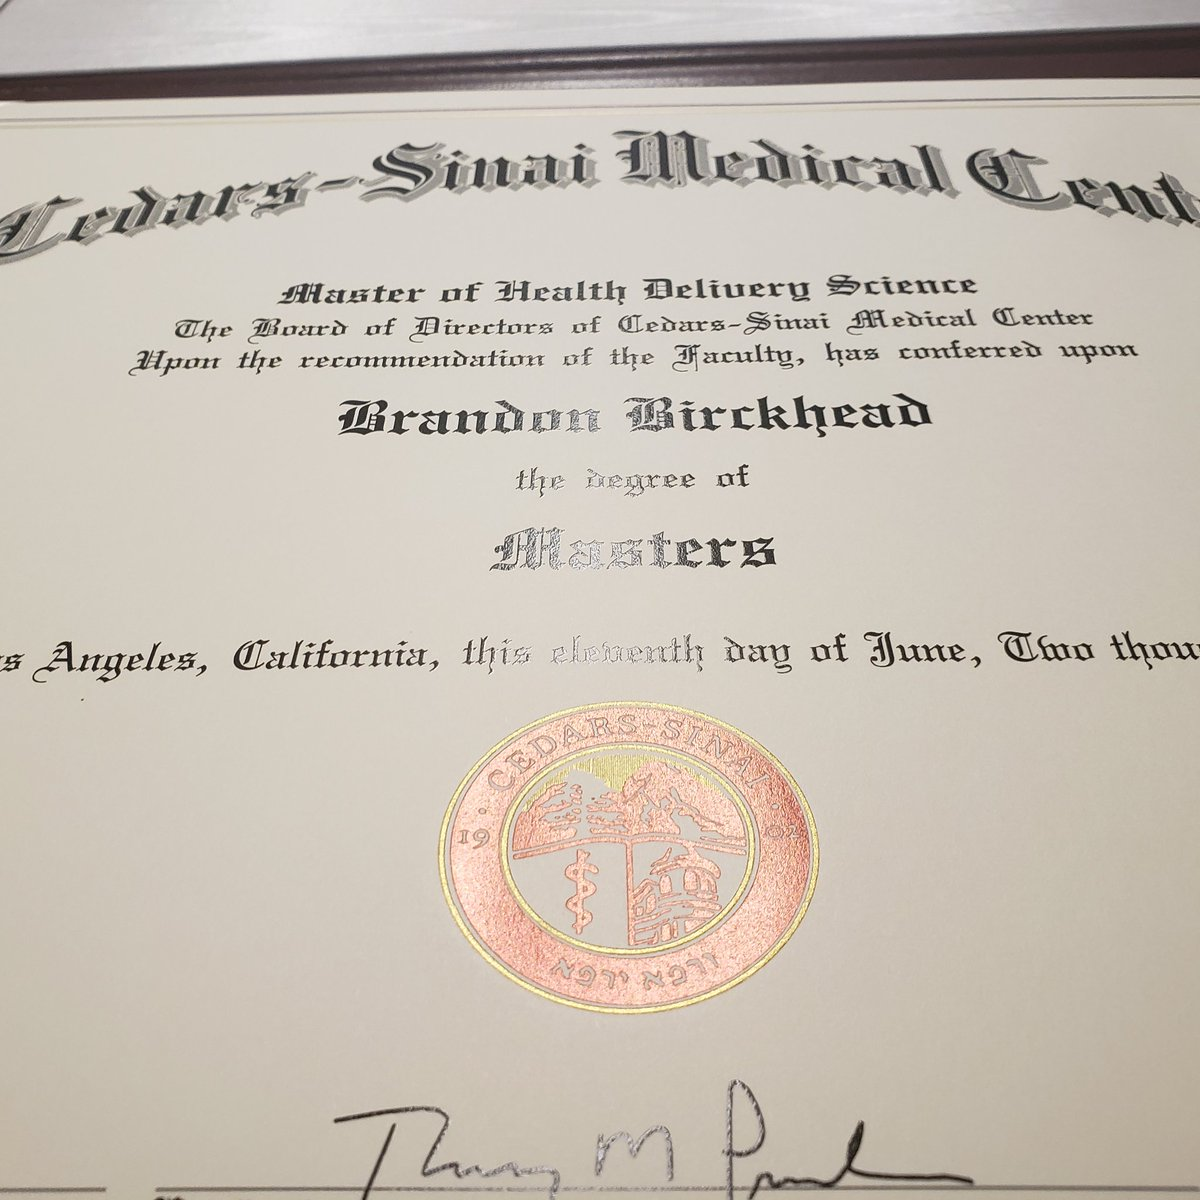 Love seeing our #CedarsSinai grad students get their diplomas! It's the result of years of grind, grit, and perseverance. Interested to join the next cohort in our MS in Health Delivery Science program? More info here; https://t.co/9KR3lyHv4J. Congrats @bjbirckhead!